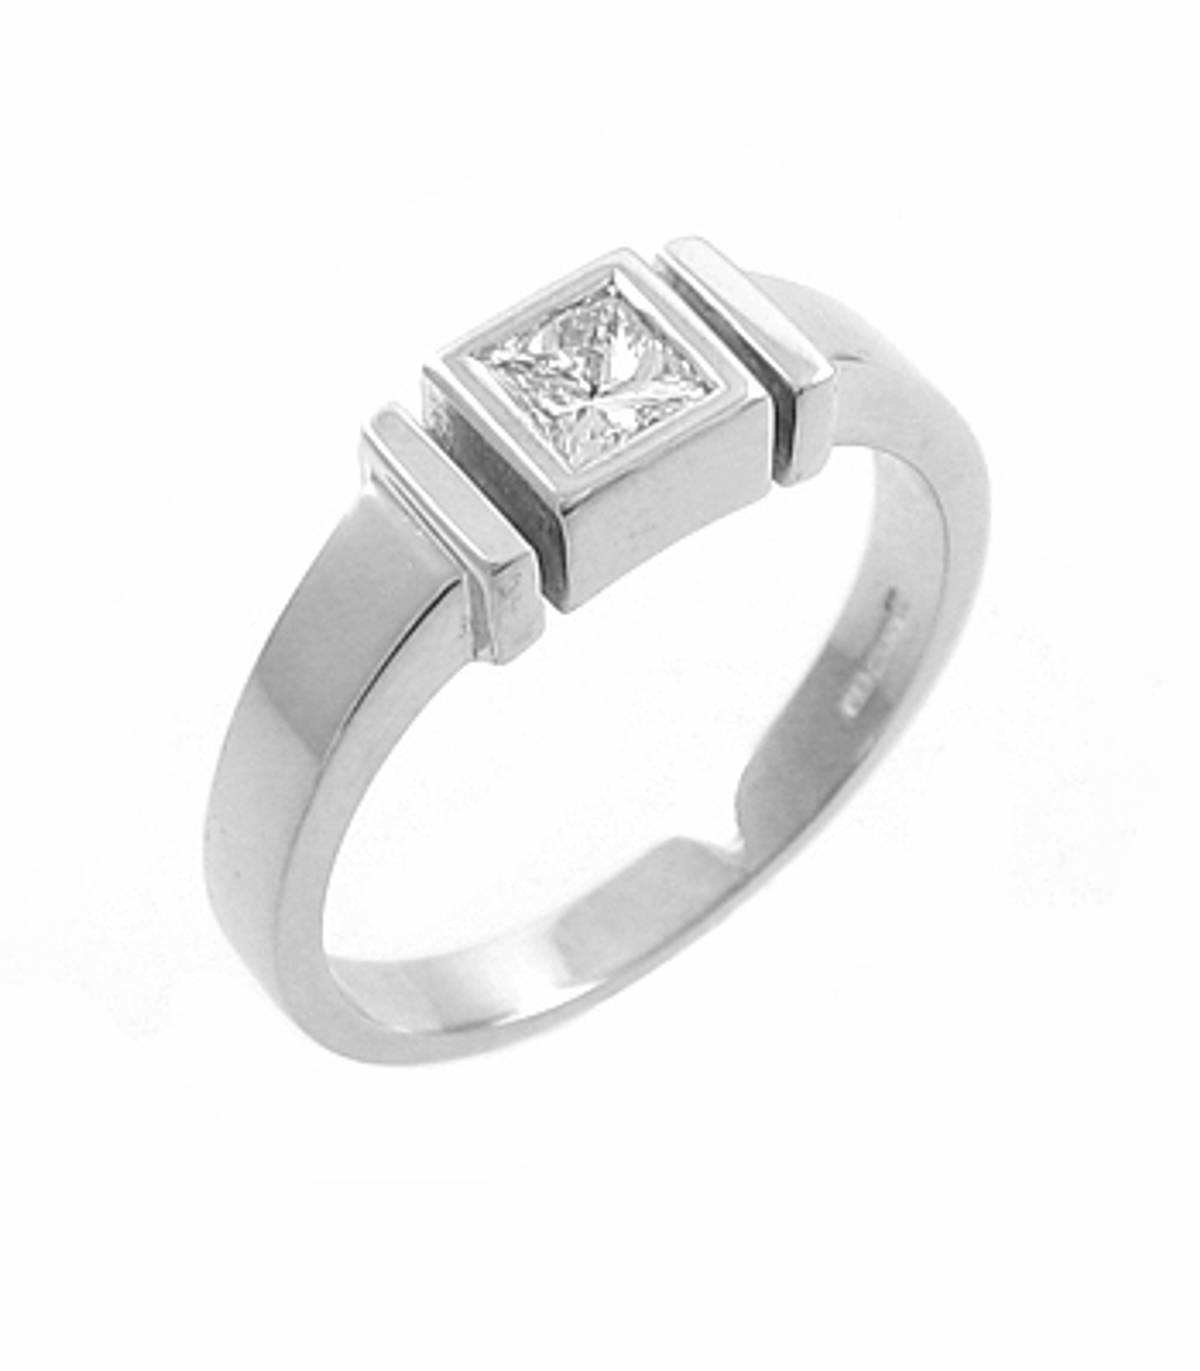 DR73400Princess cut diamond rubover set solitaire ringPictured item: 0.32cts diamond set in 18k white gold